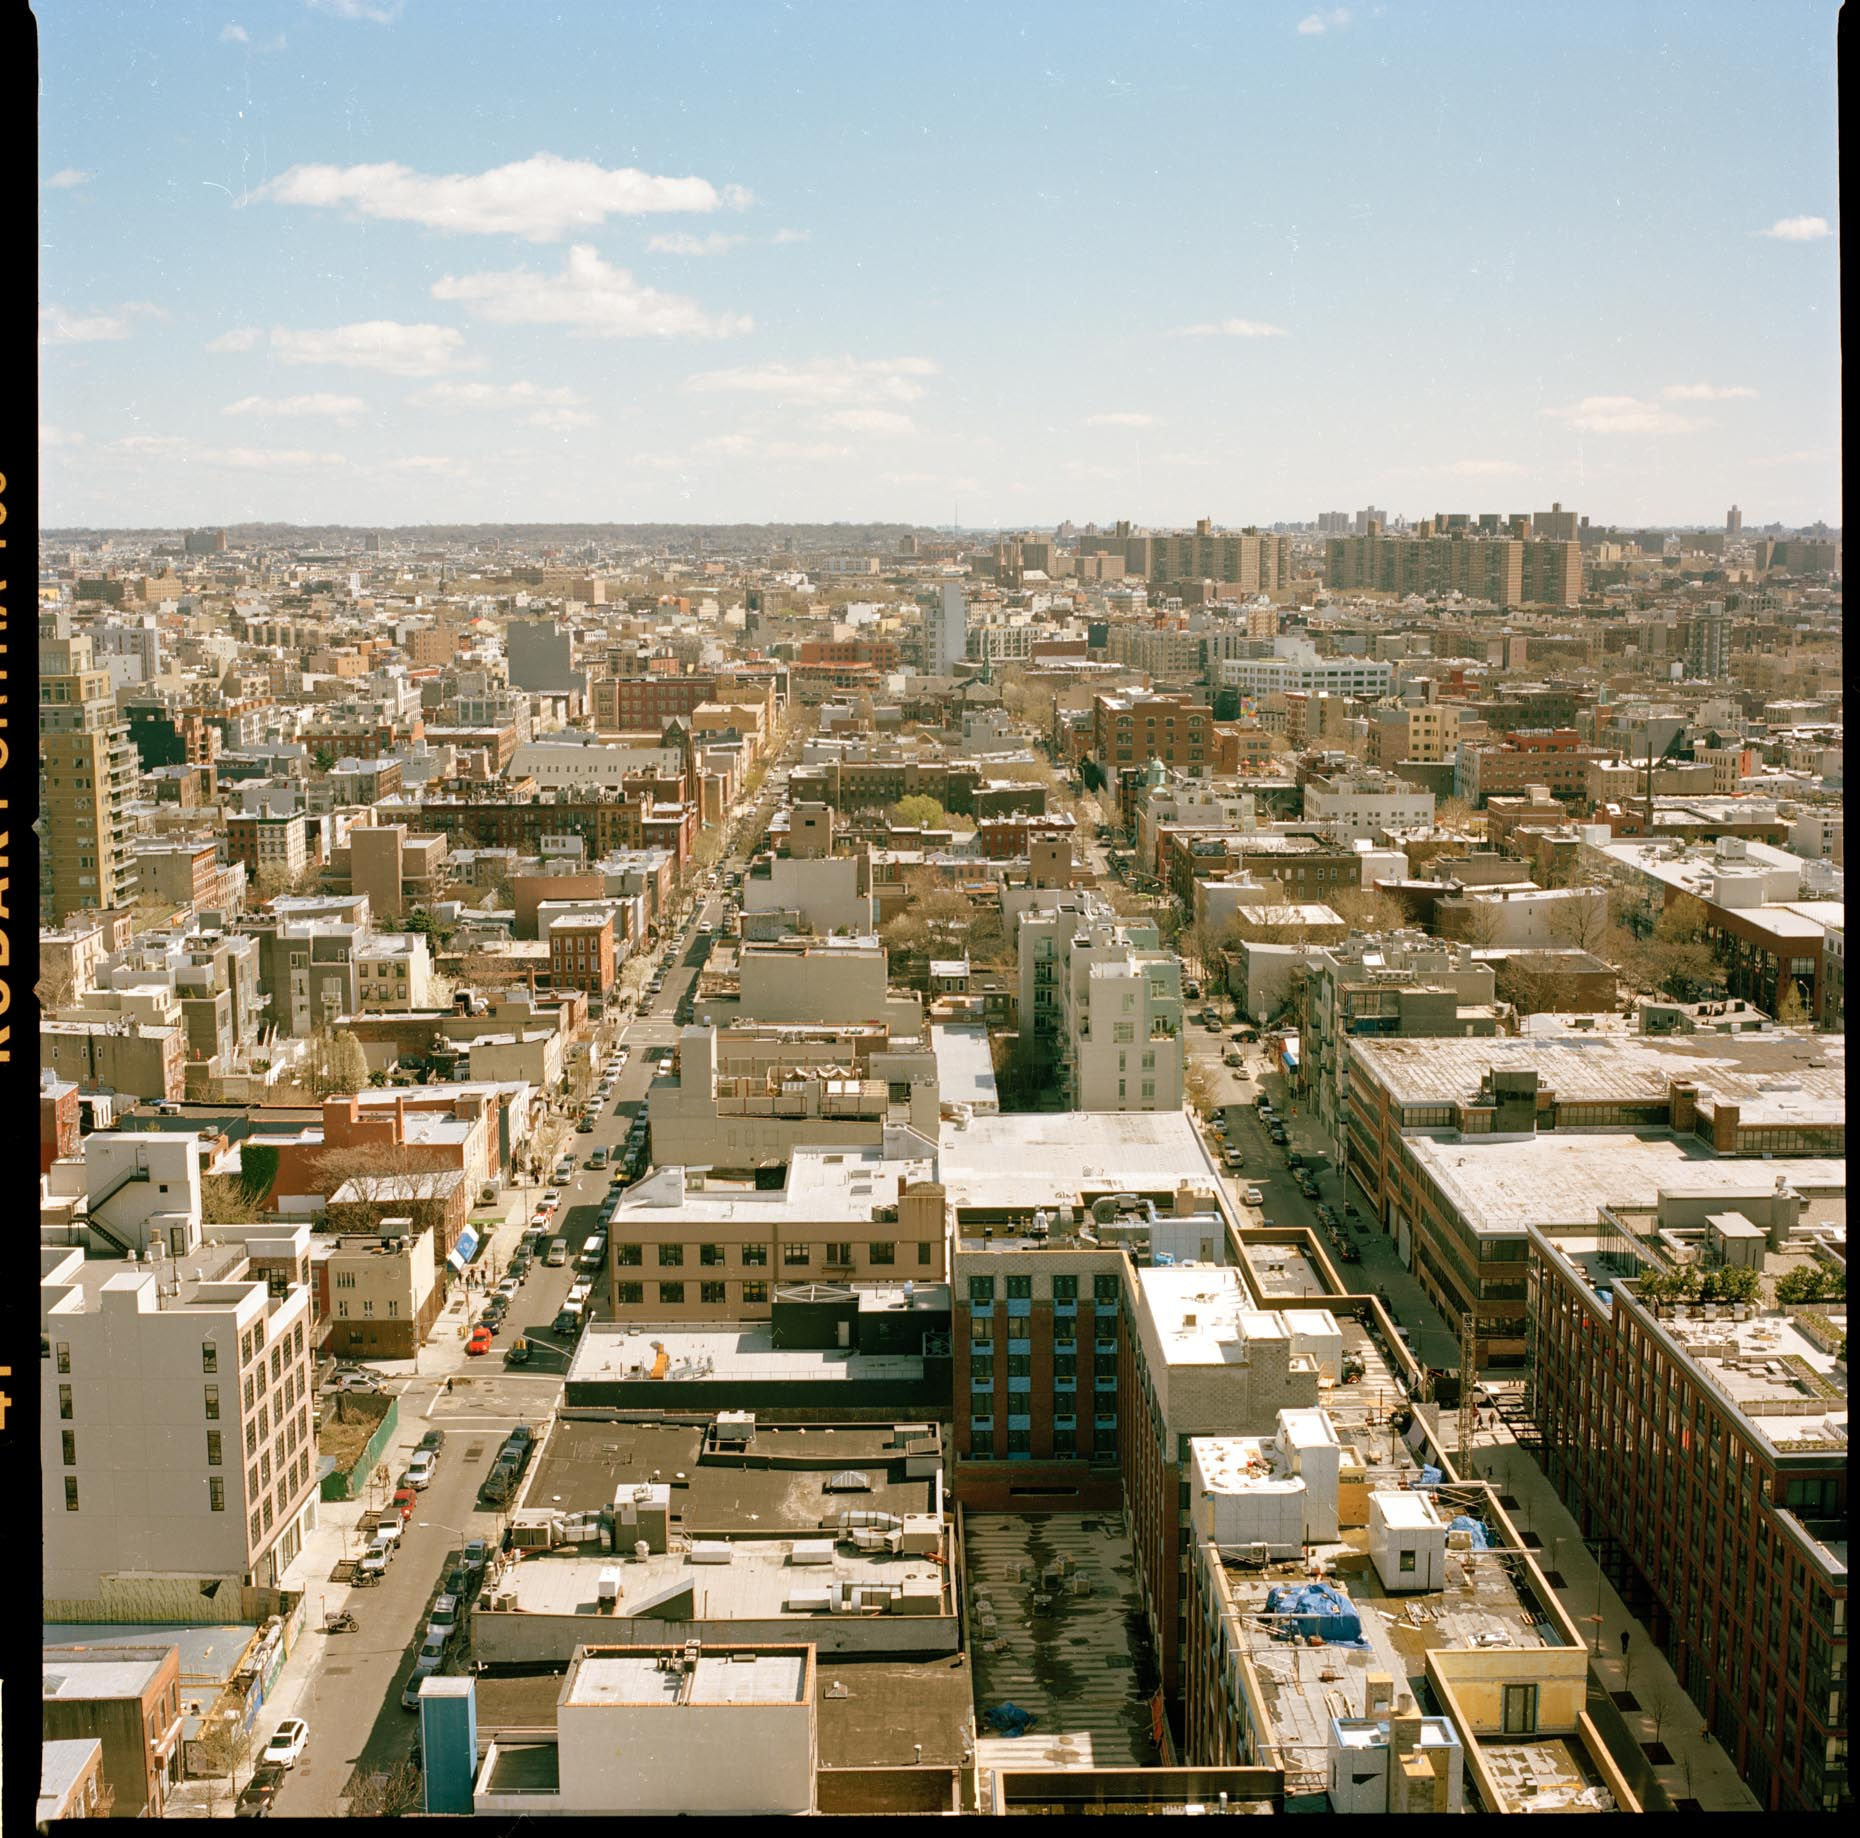 A view over Brooklyn from an apartment on Kent Avenue in Williamsburg, Brooklyn. The camera looks east towards Bushwick and beyond.